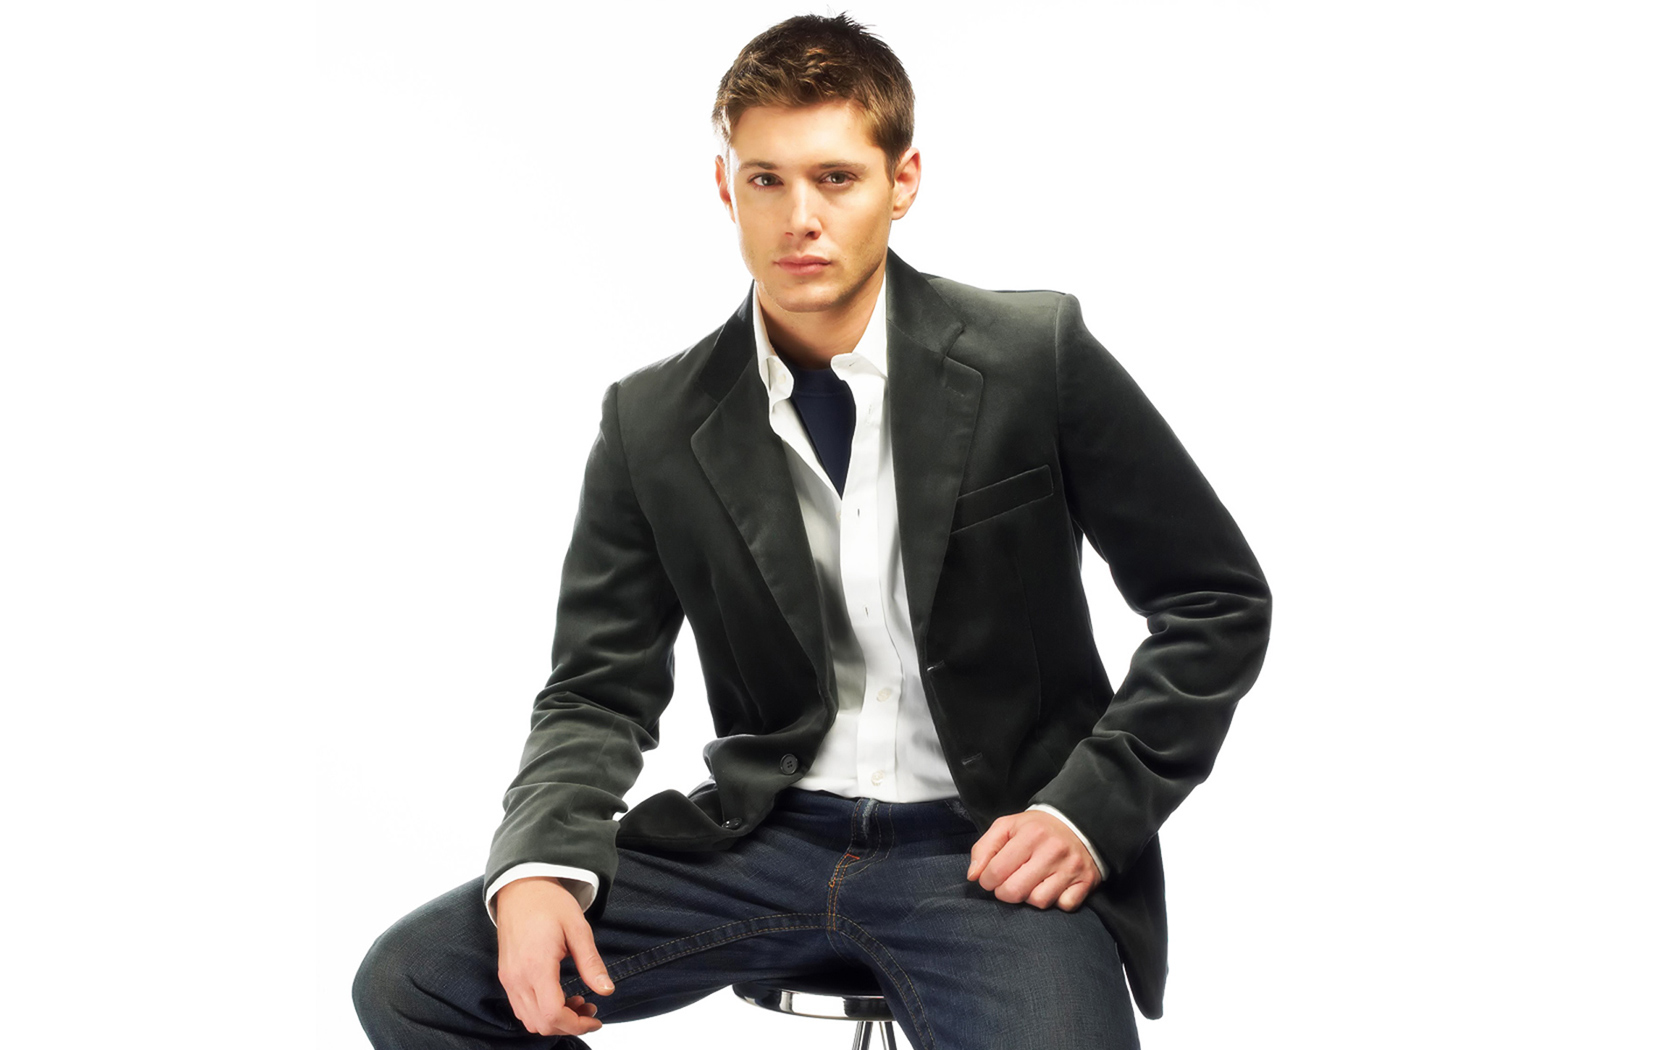 Ackles Handsome Men computer desktop wallpapers pictures images 1680x1050